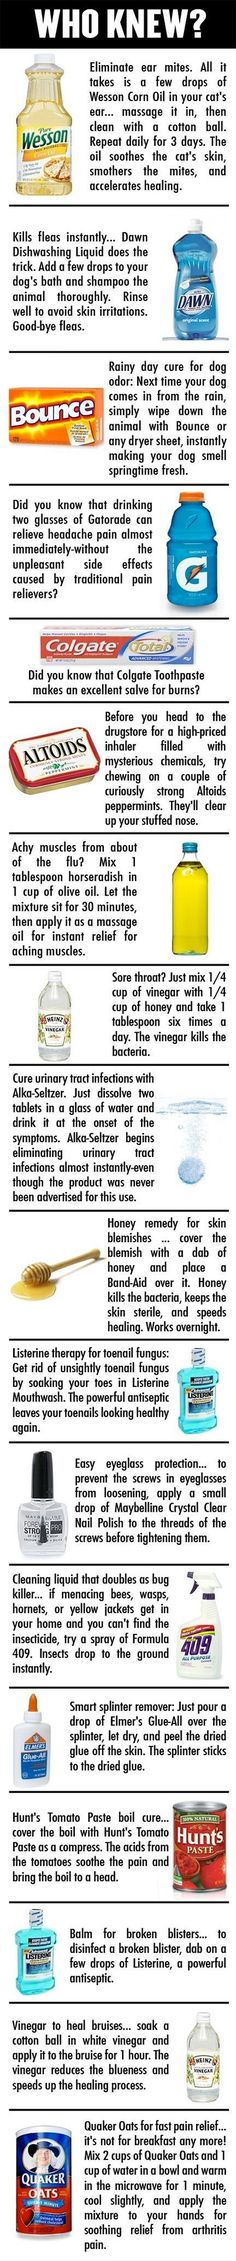 Thankfully, there are people out there who experiment with random products and end up creating awesome remedies for things they weren't necessarily intended for! Of course, many of these tips will have been passed down through generations of families, so, you might have heard about a few already, but others will be more modern discoveries you'll be thankful you now know. So, if you're a fan of simple home remedies and quick fixes, take a look here!